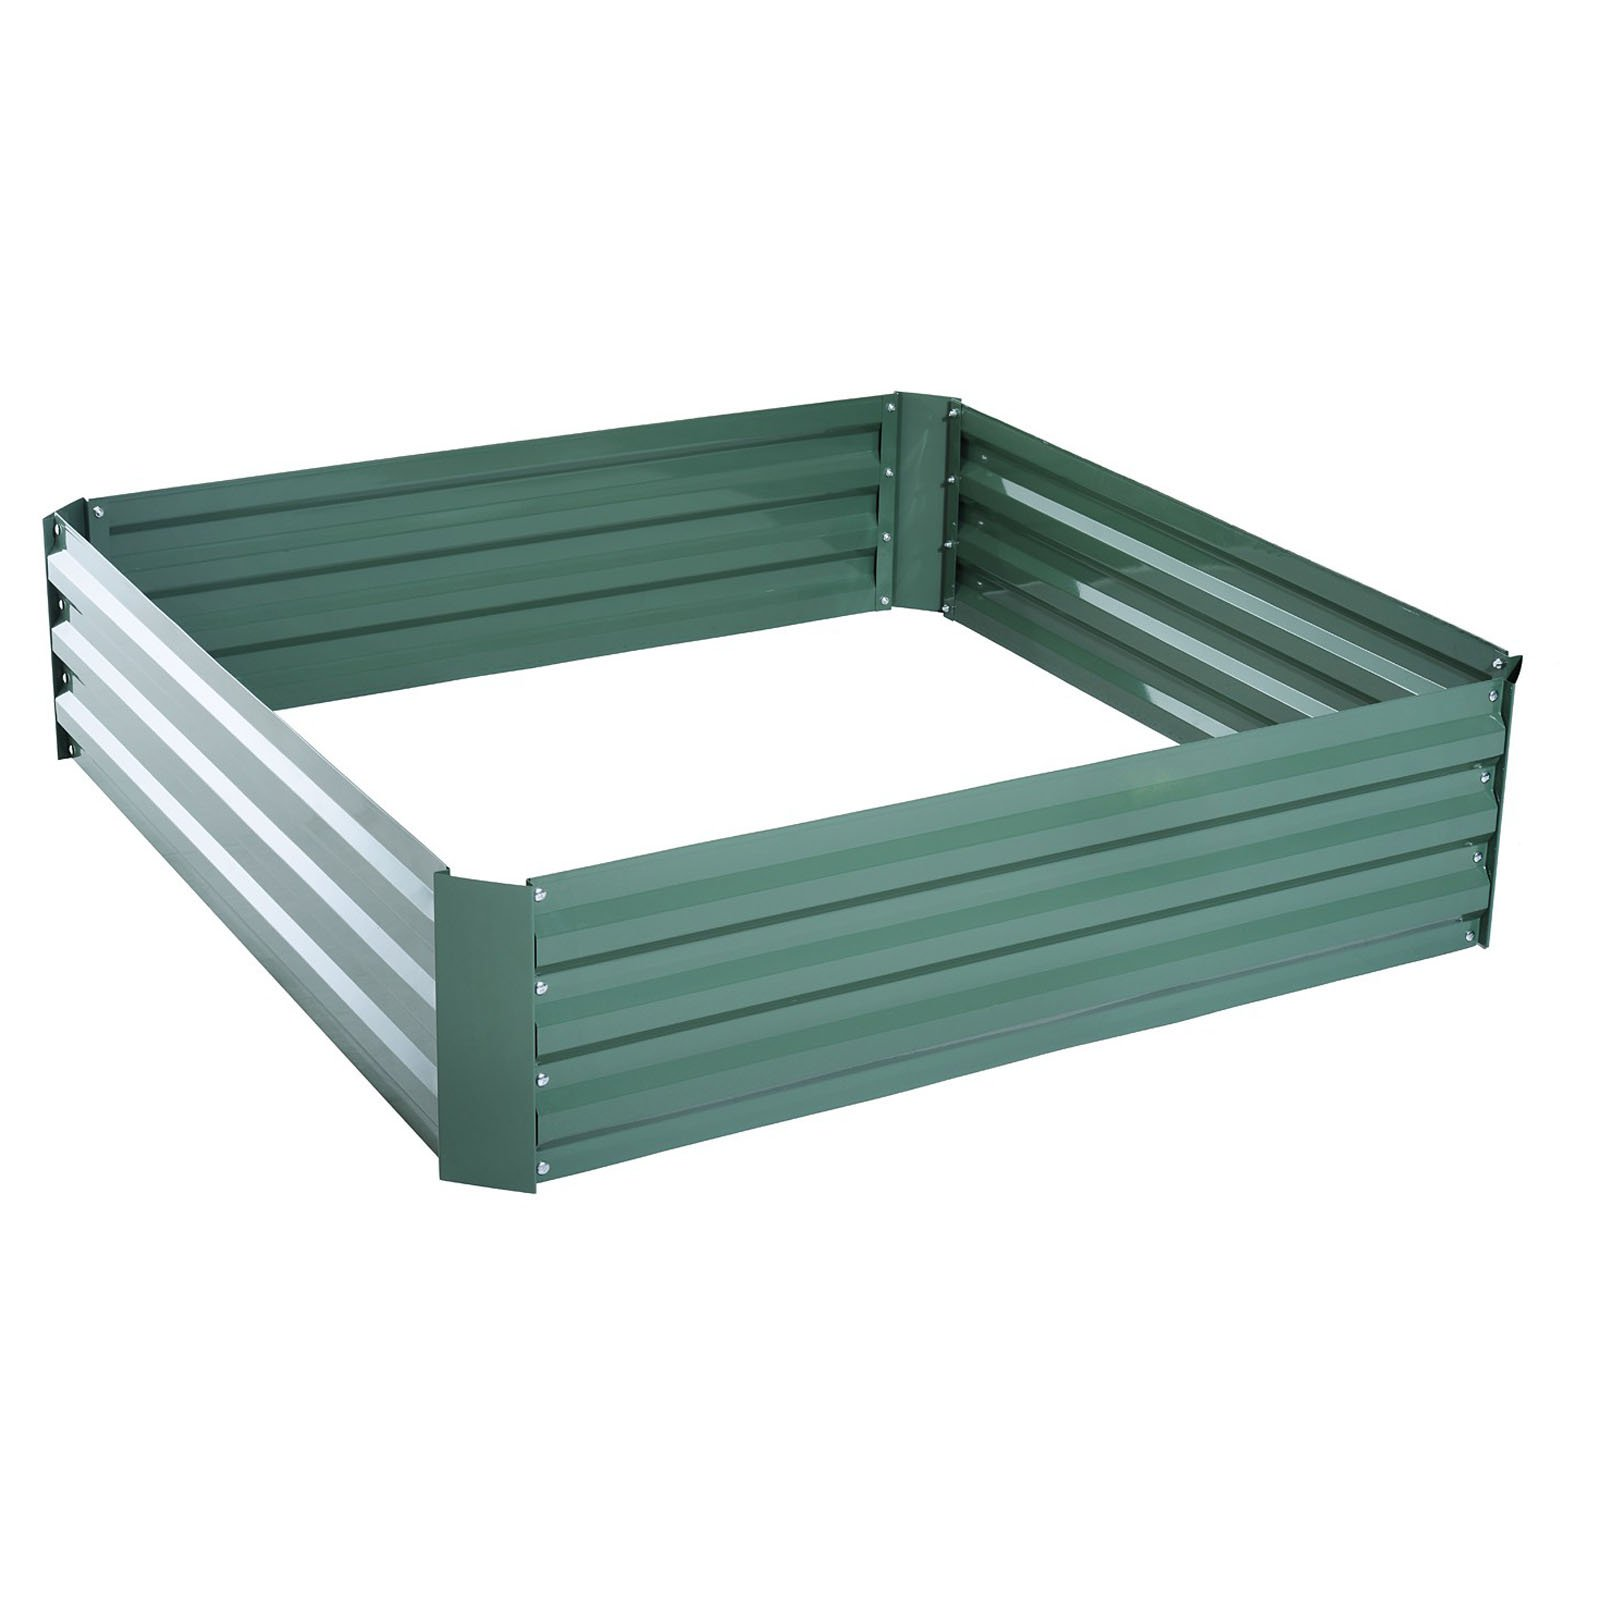 Outsunny 49 x 49 in. Galvanized Metal Raised Garden Bed